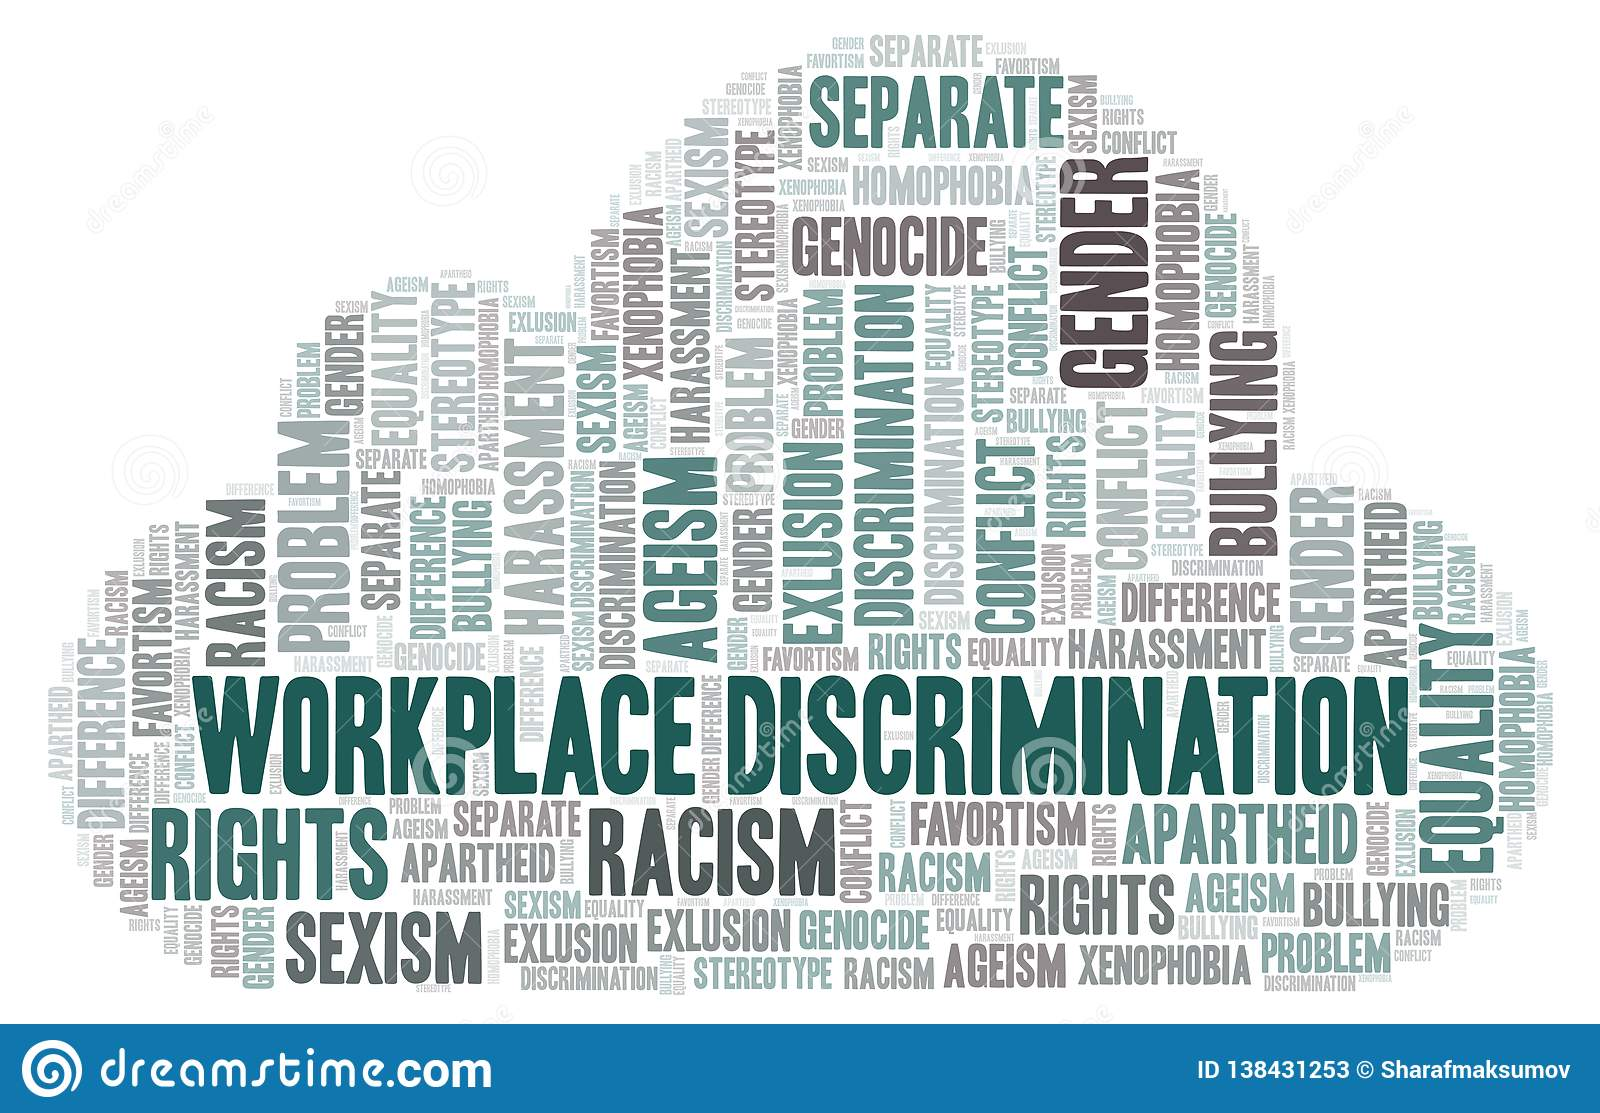 Workplace Discrimination - type of discrimination - word cloud